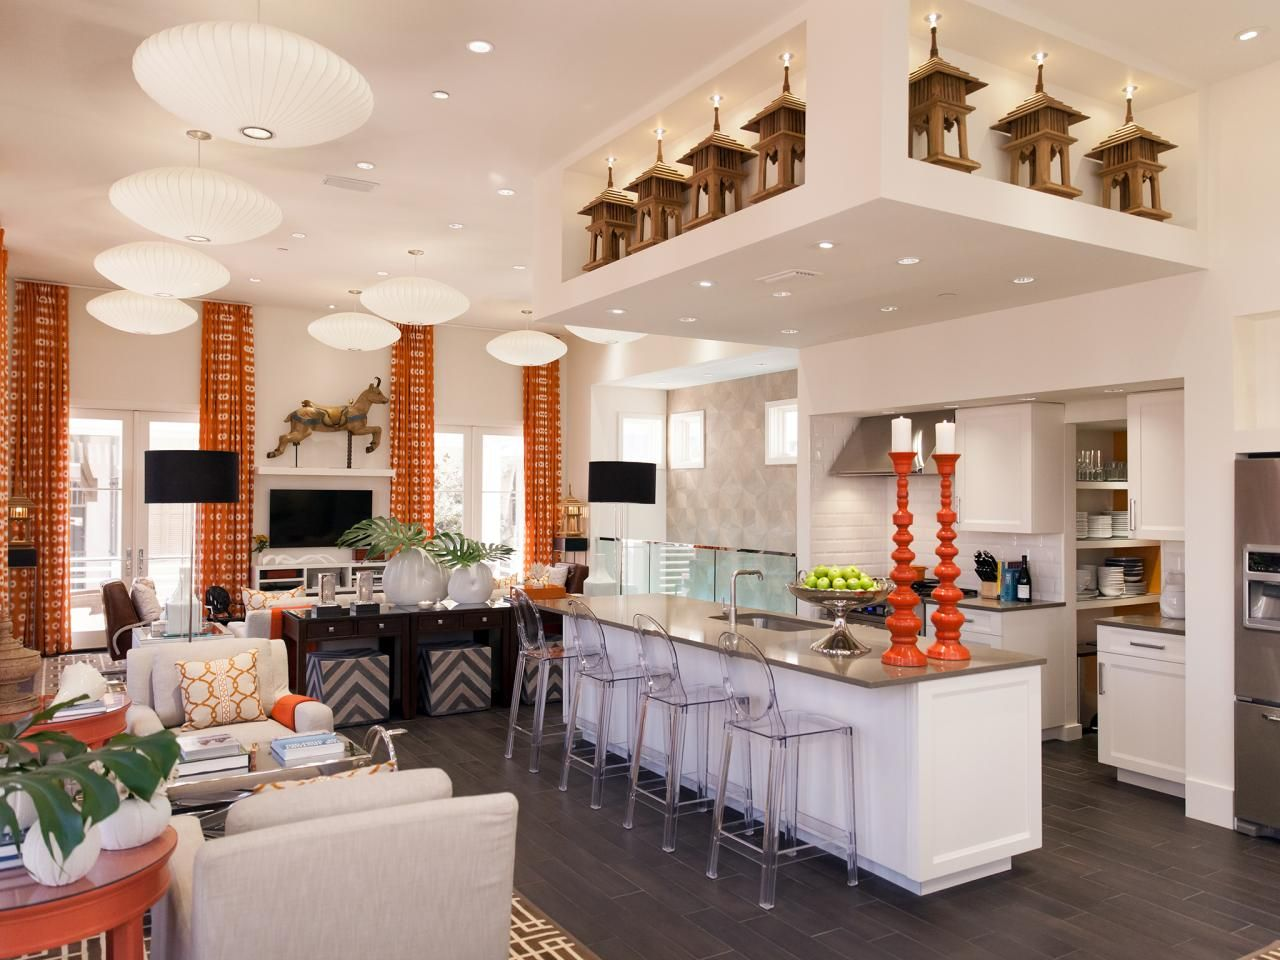 This striking white kitchen, as seen on HGTV's Live In Vern's House, features an open-plan kitchen that connects to the living area. Vibrant orange accents and flea-market finds, as well as international and Asian-inspired elements, help fill the space with visual interest and a playfully contemporary vibe.